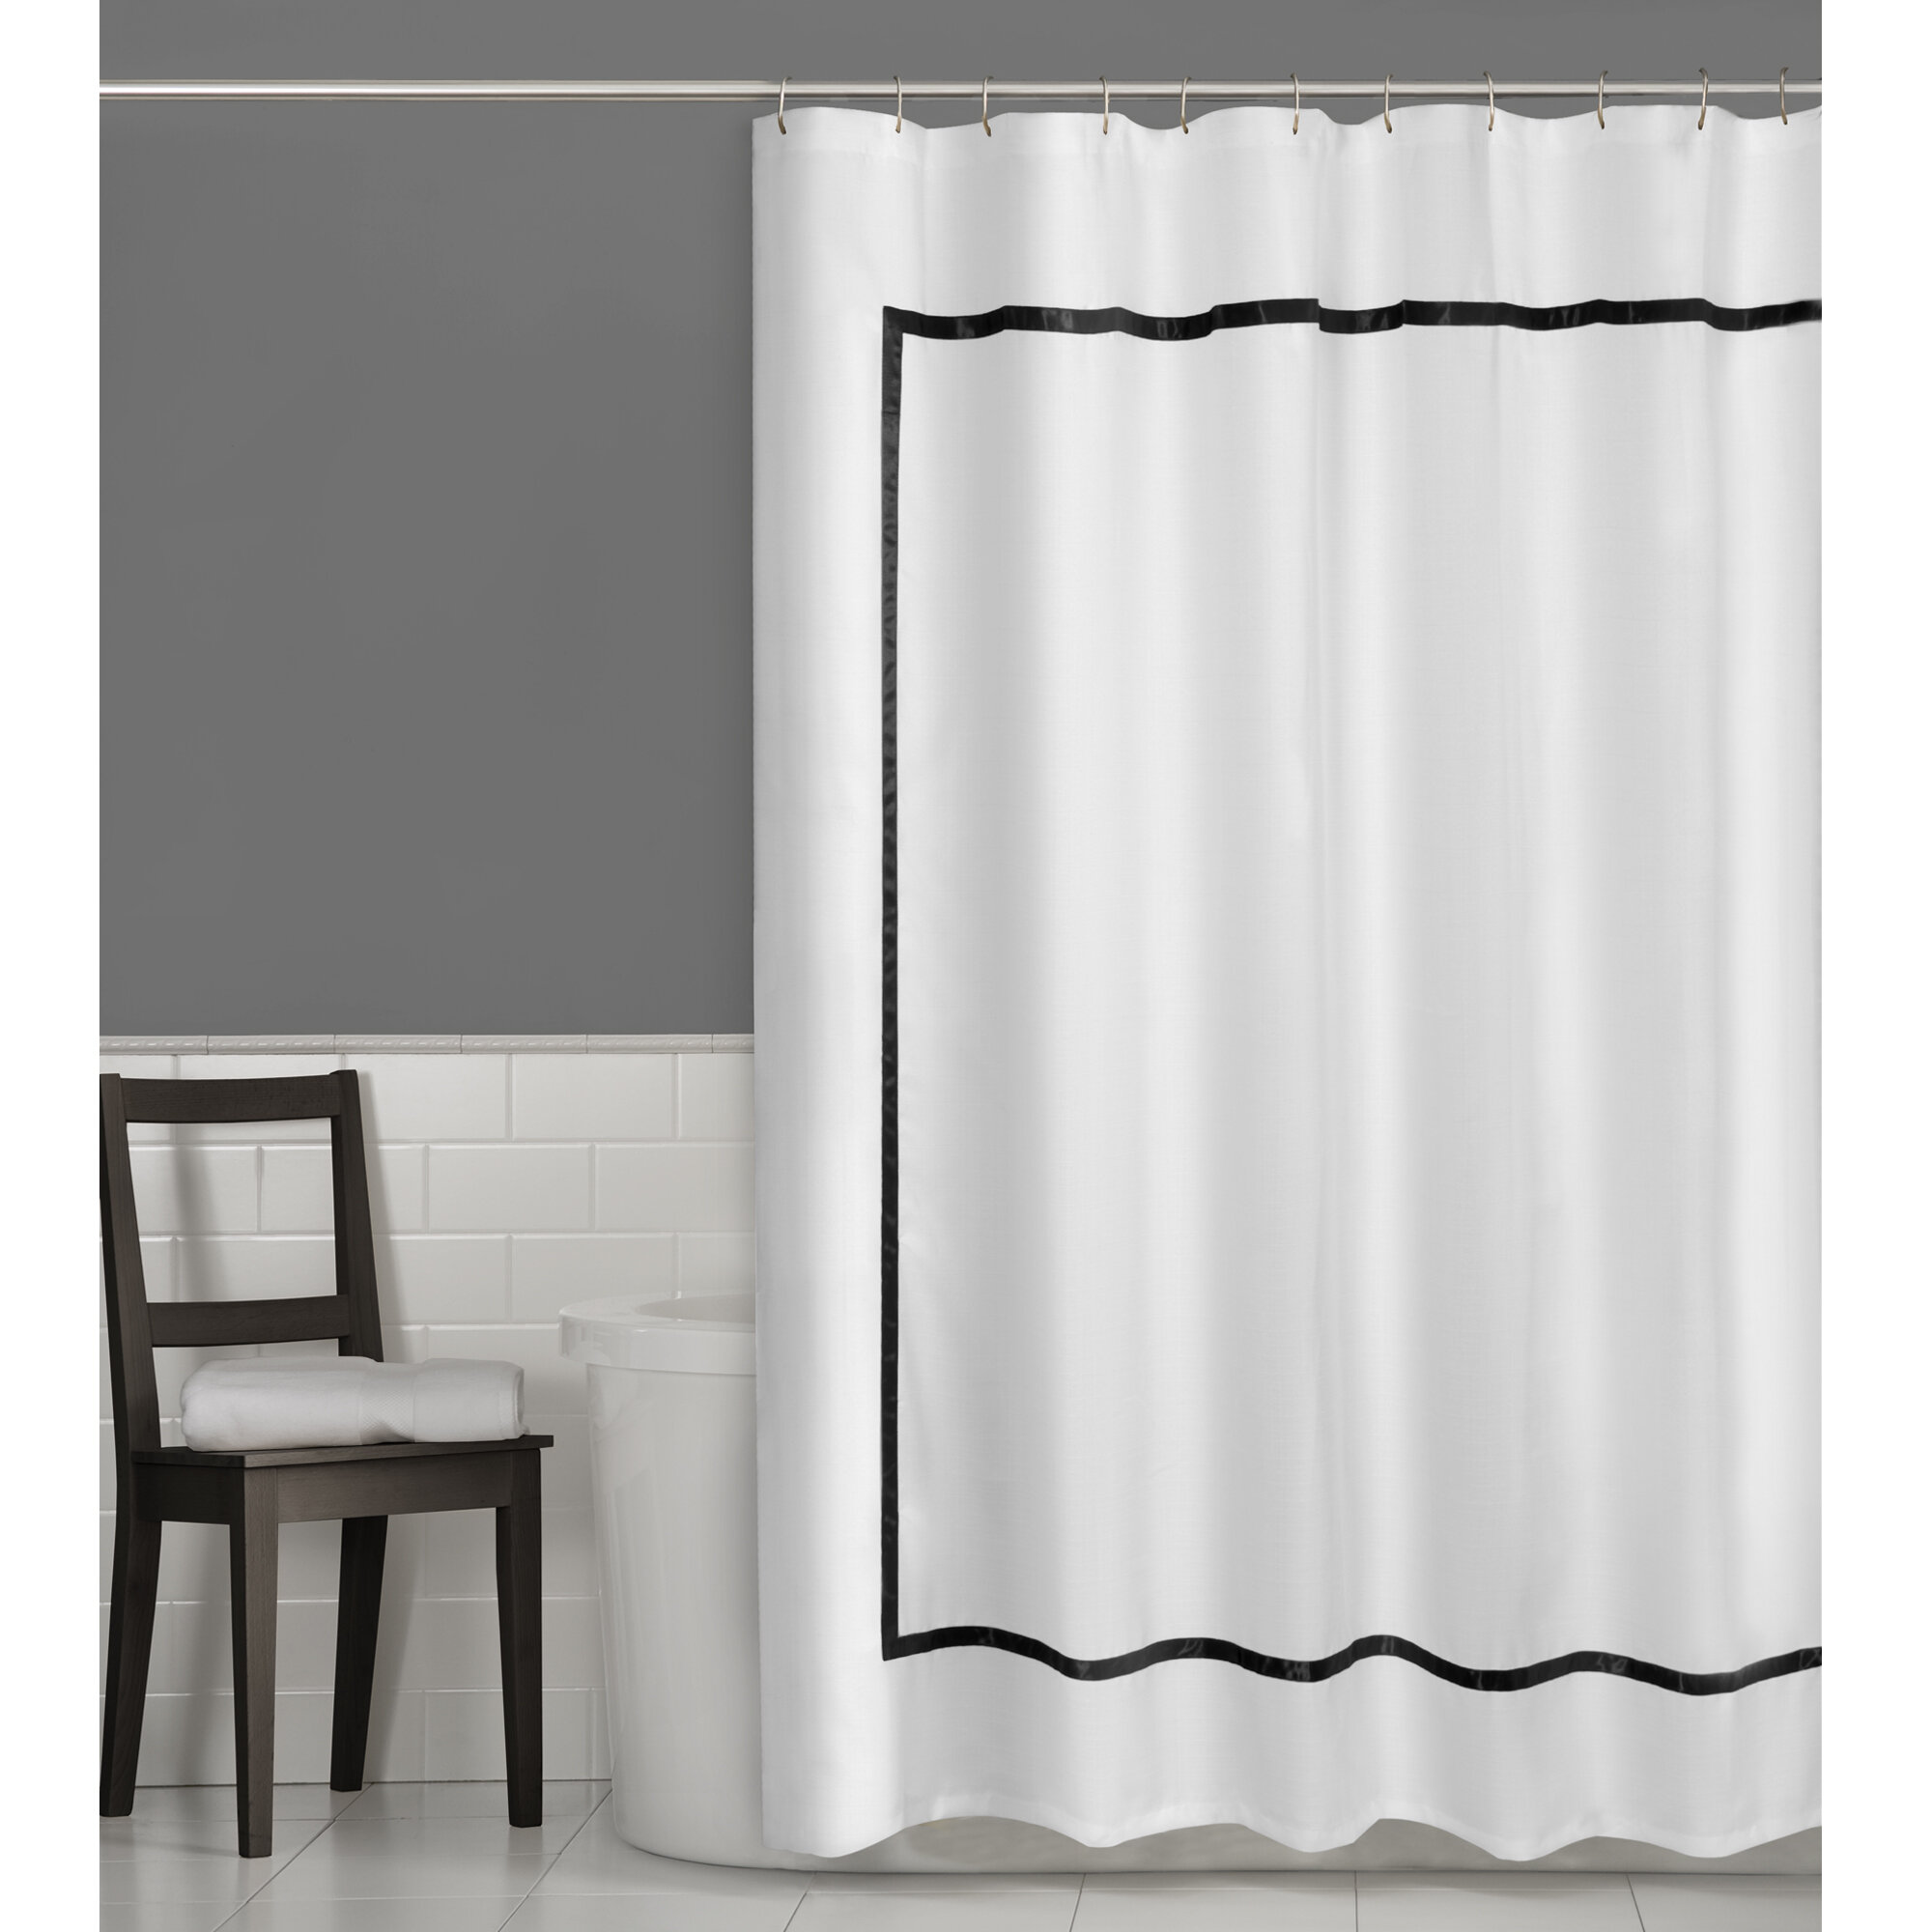 Maytex Hotel Border Single Shower Curtain Reviews